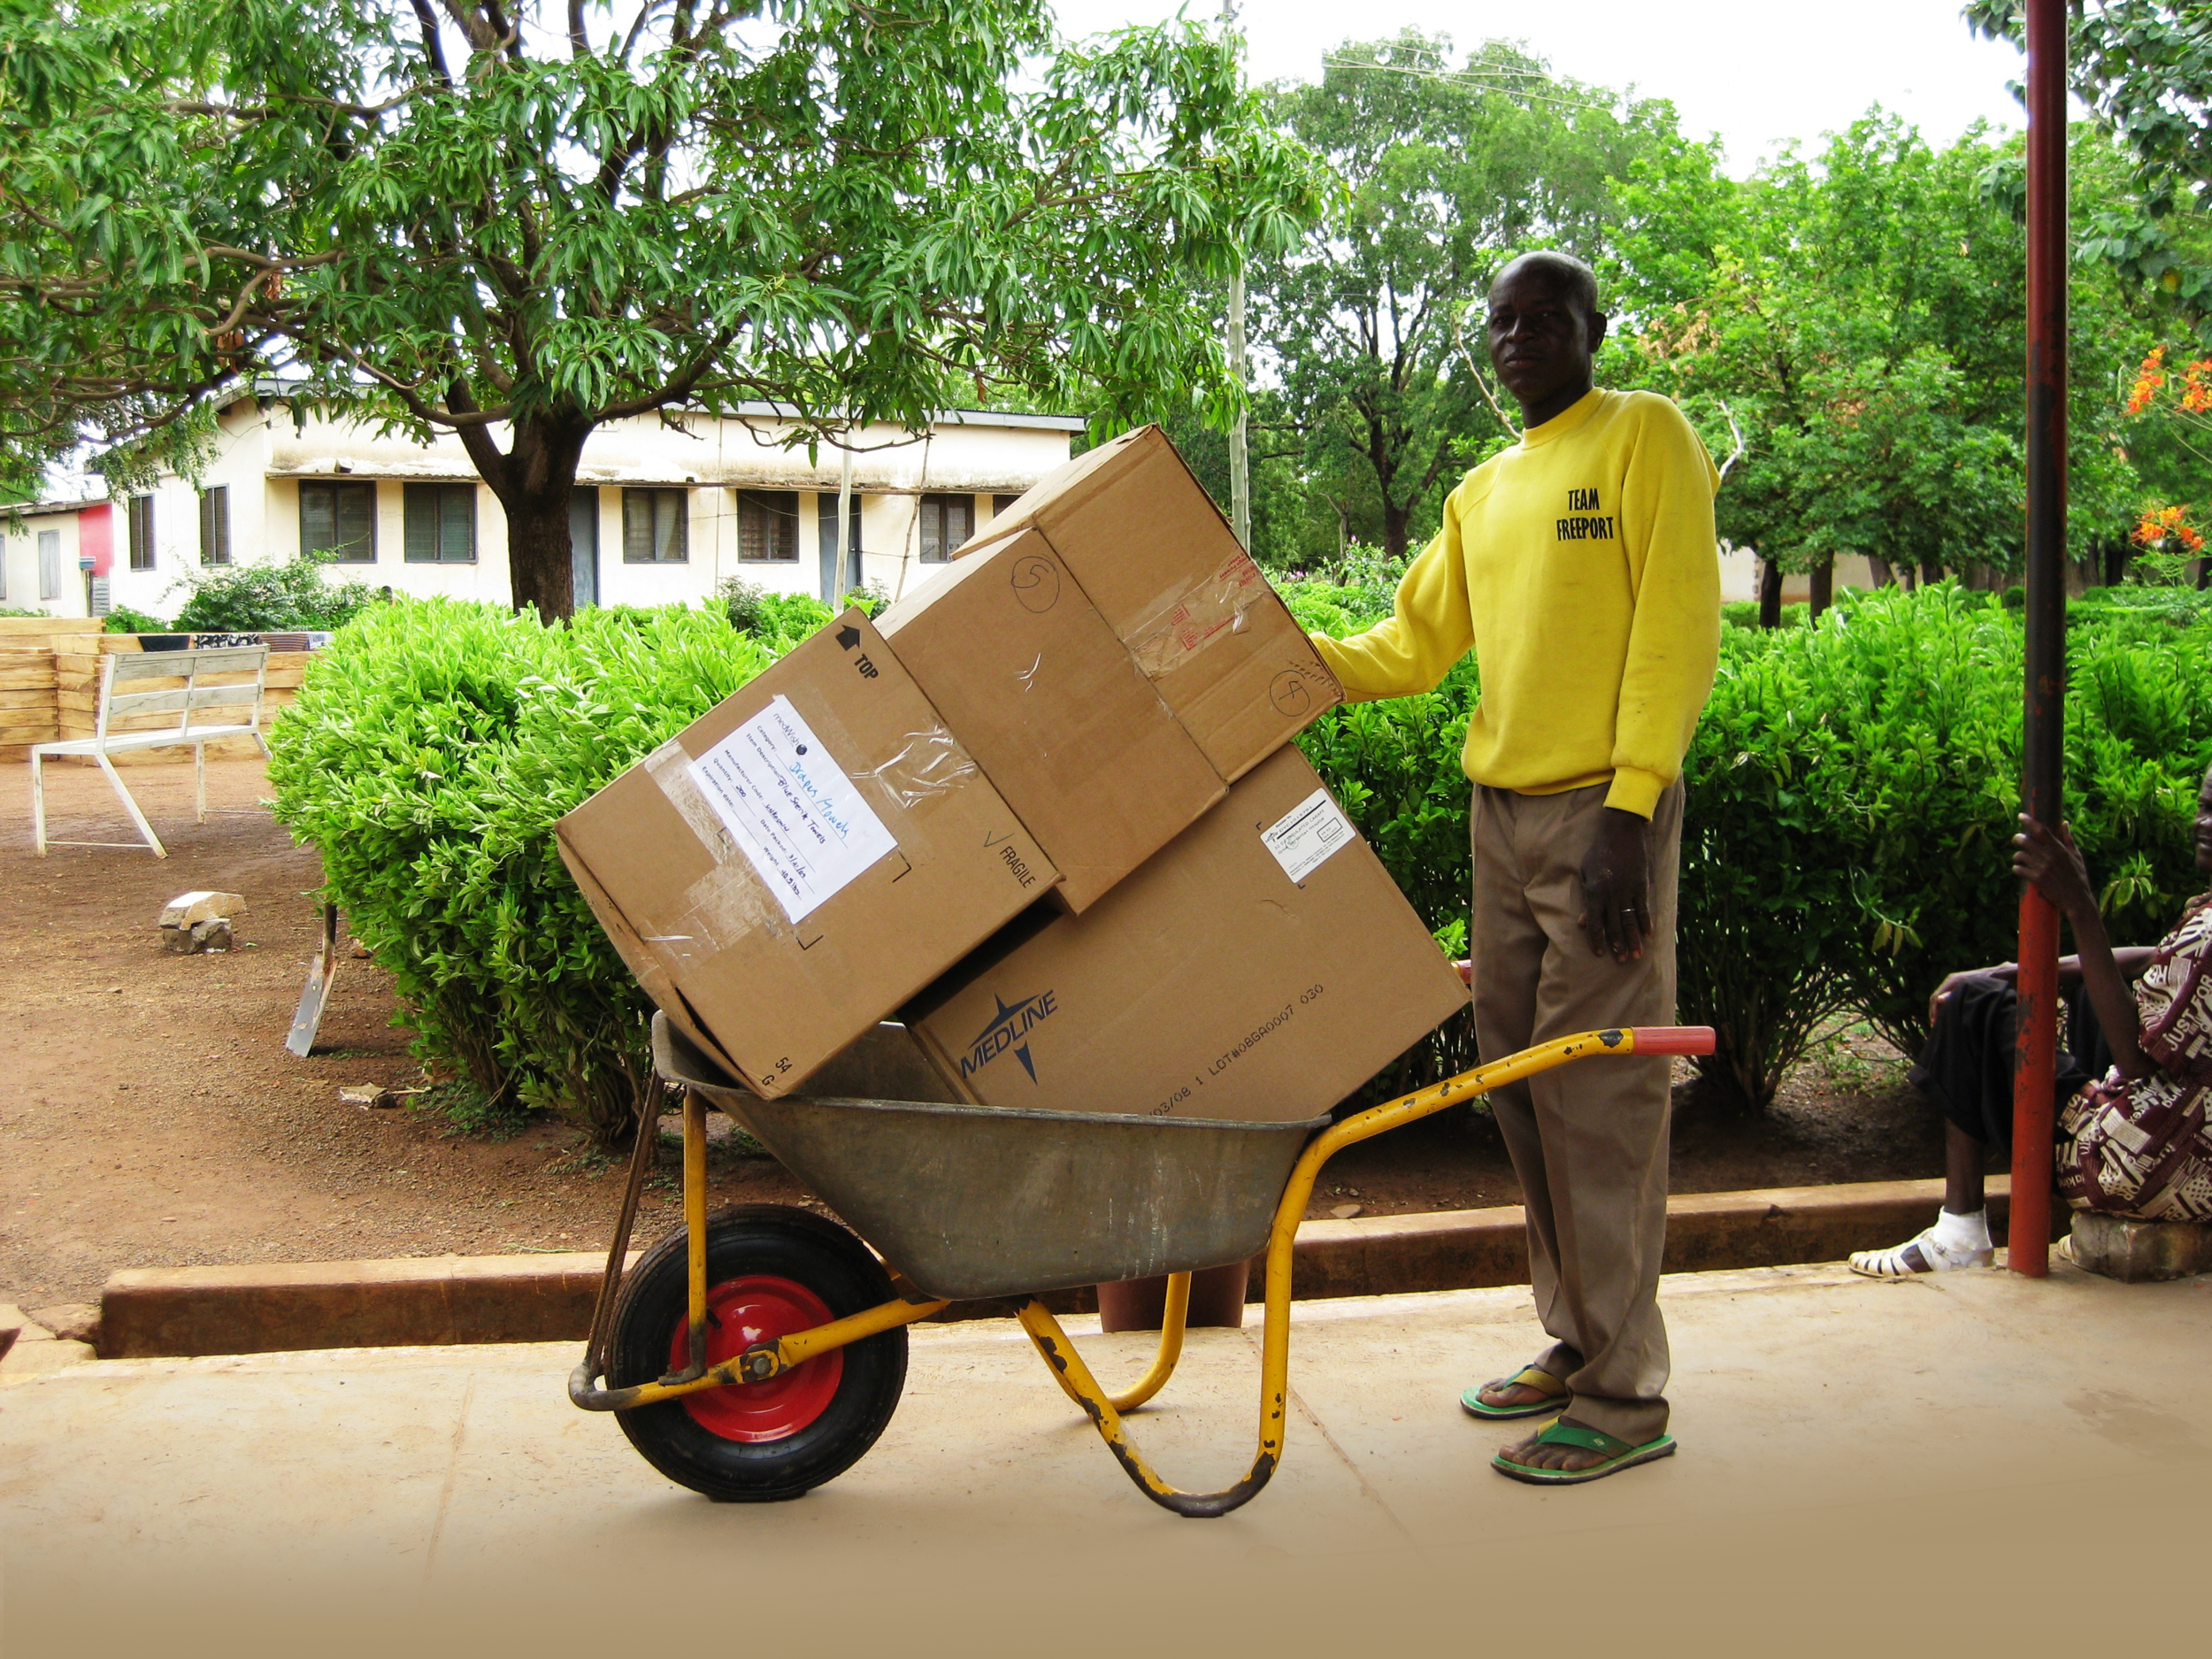 Transporting Donated Supplies with Wheelbarrow - Lawra 2.png